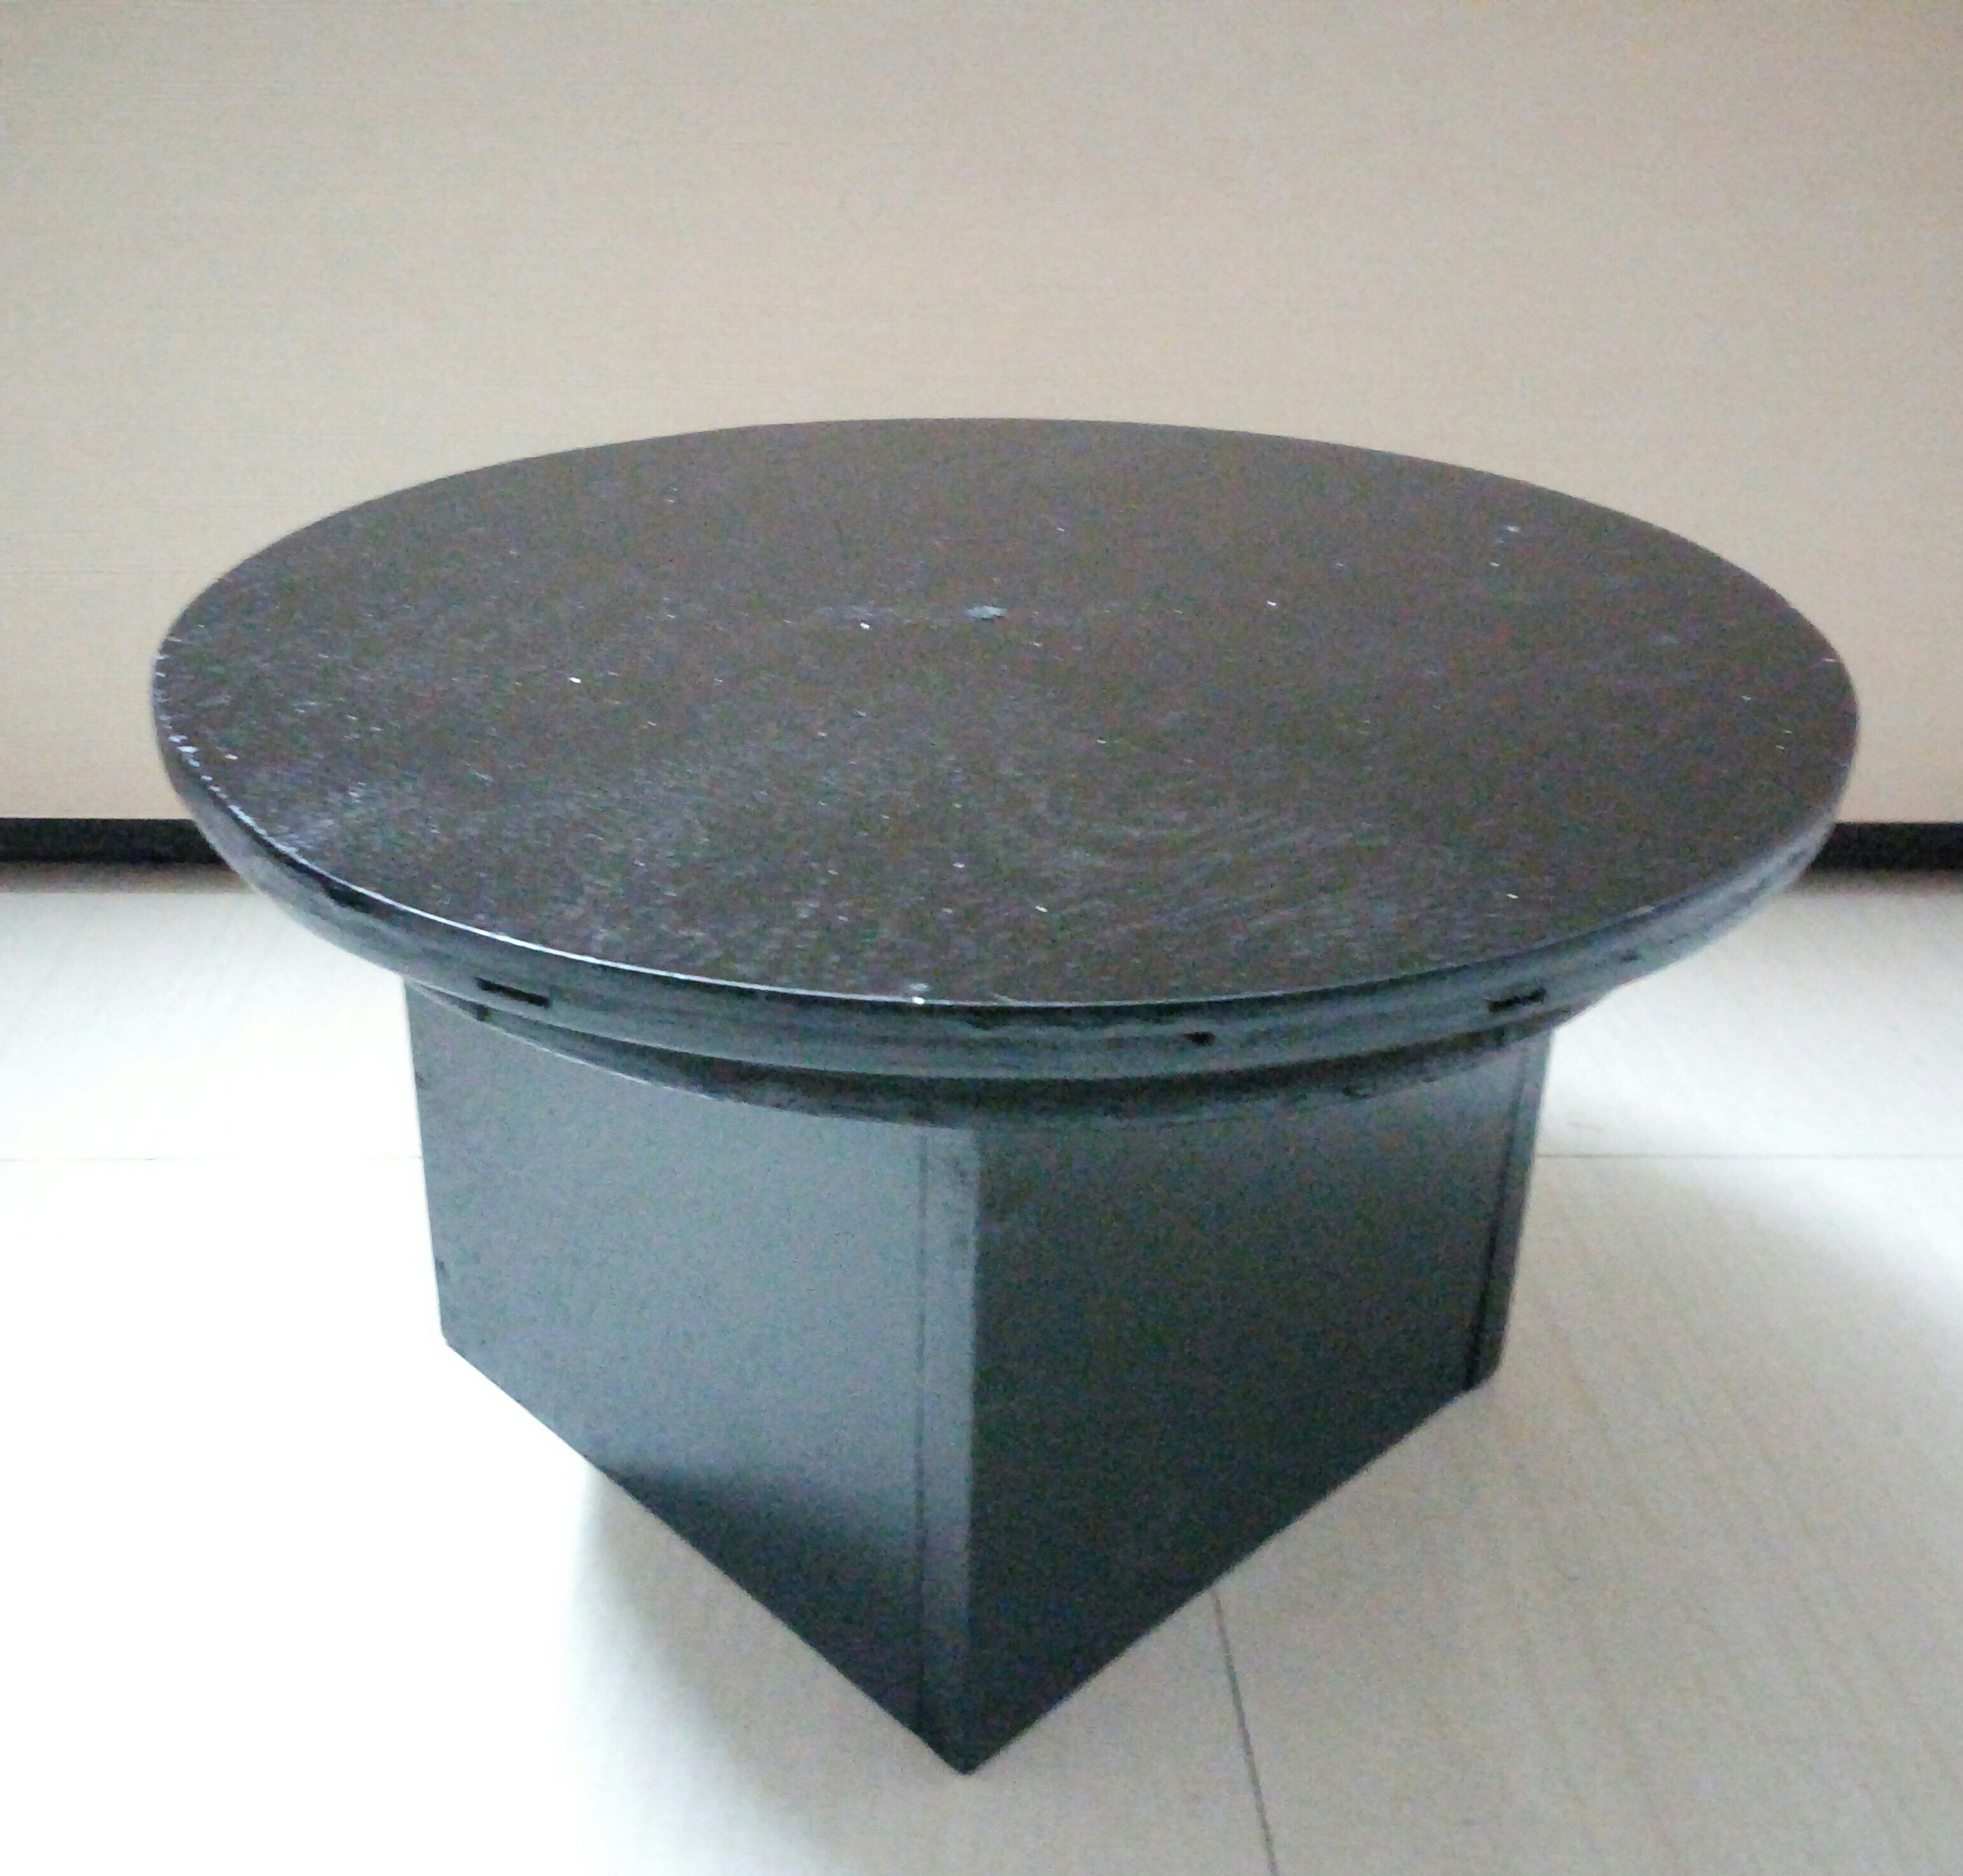 Picture of Turntable for Cakes